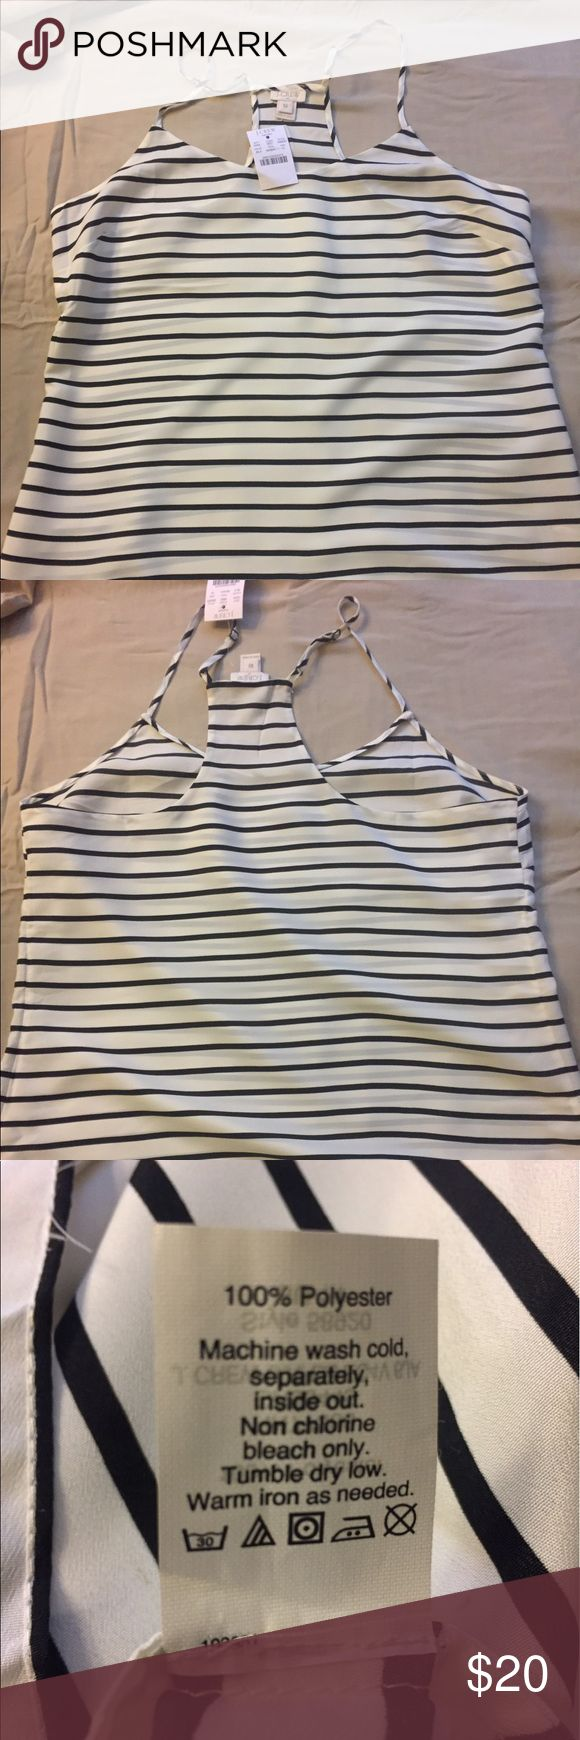 Adorable black and white striped J. Crew tank top Cute tank top. Looks great with lack jeans and heels. Full disclosure.. not great for bustier ladies.  But snug in the chest area without much stretch. Never worn. J. Crew Tops Tank Tops